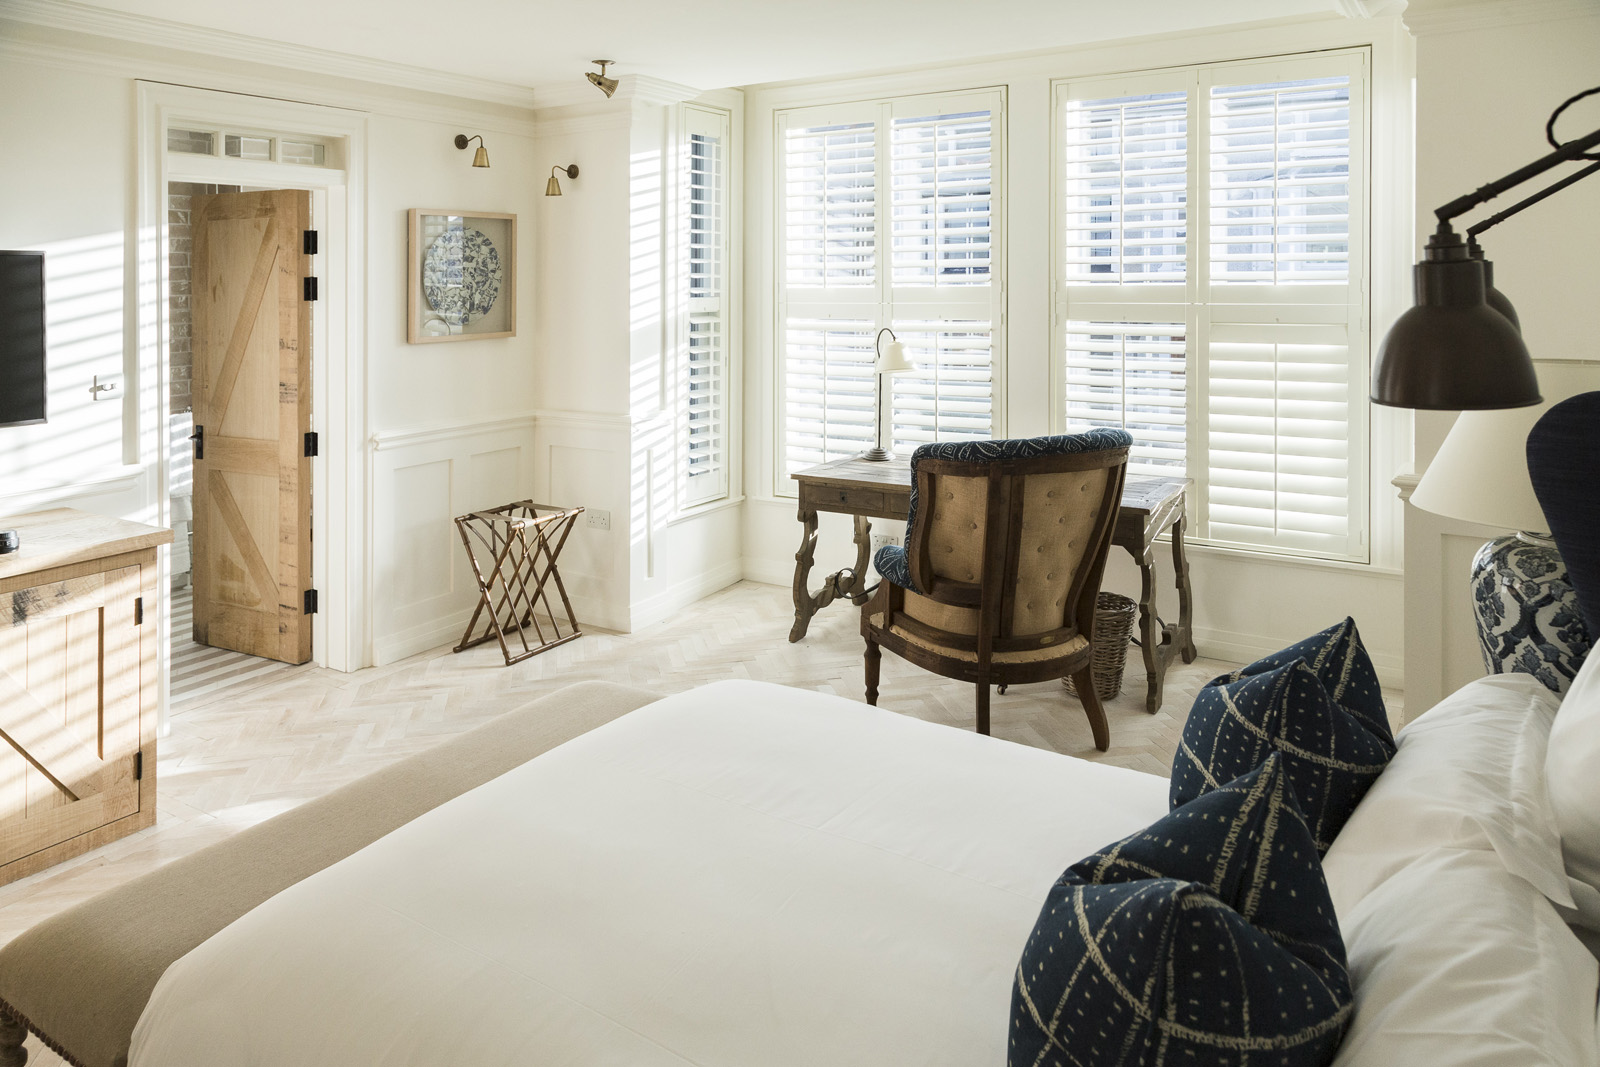 Win an overnight stay for 2 with breakfast